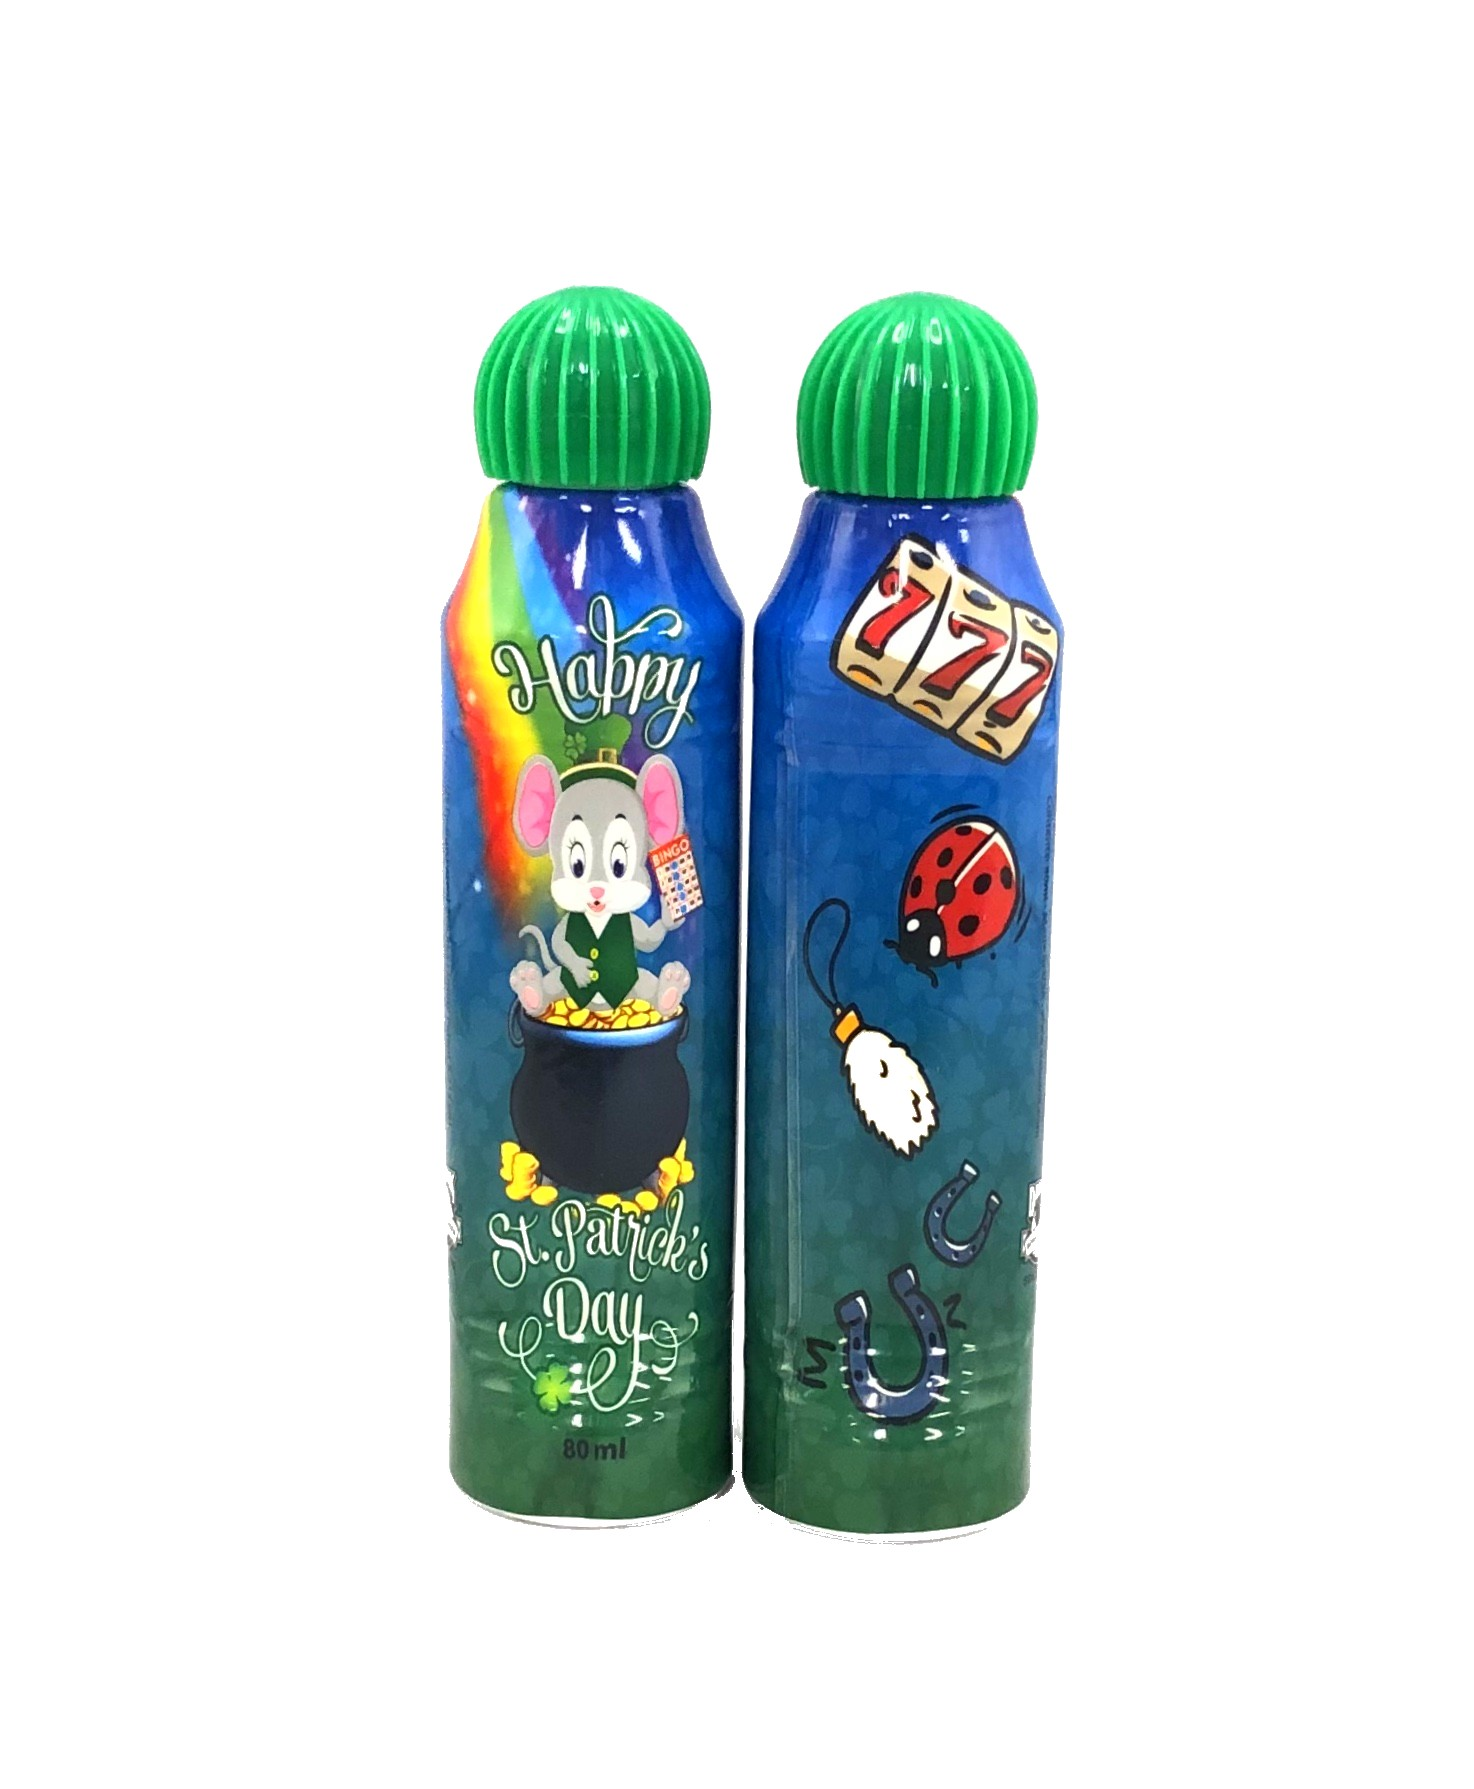 NEW- St Patrick's Day 3oz Dab-O-Ink dauber – Green